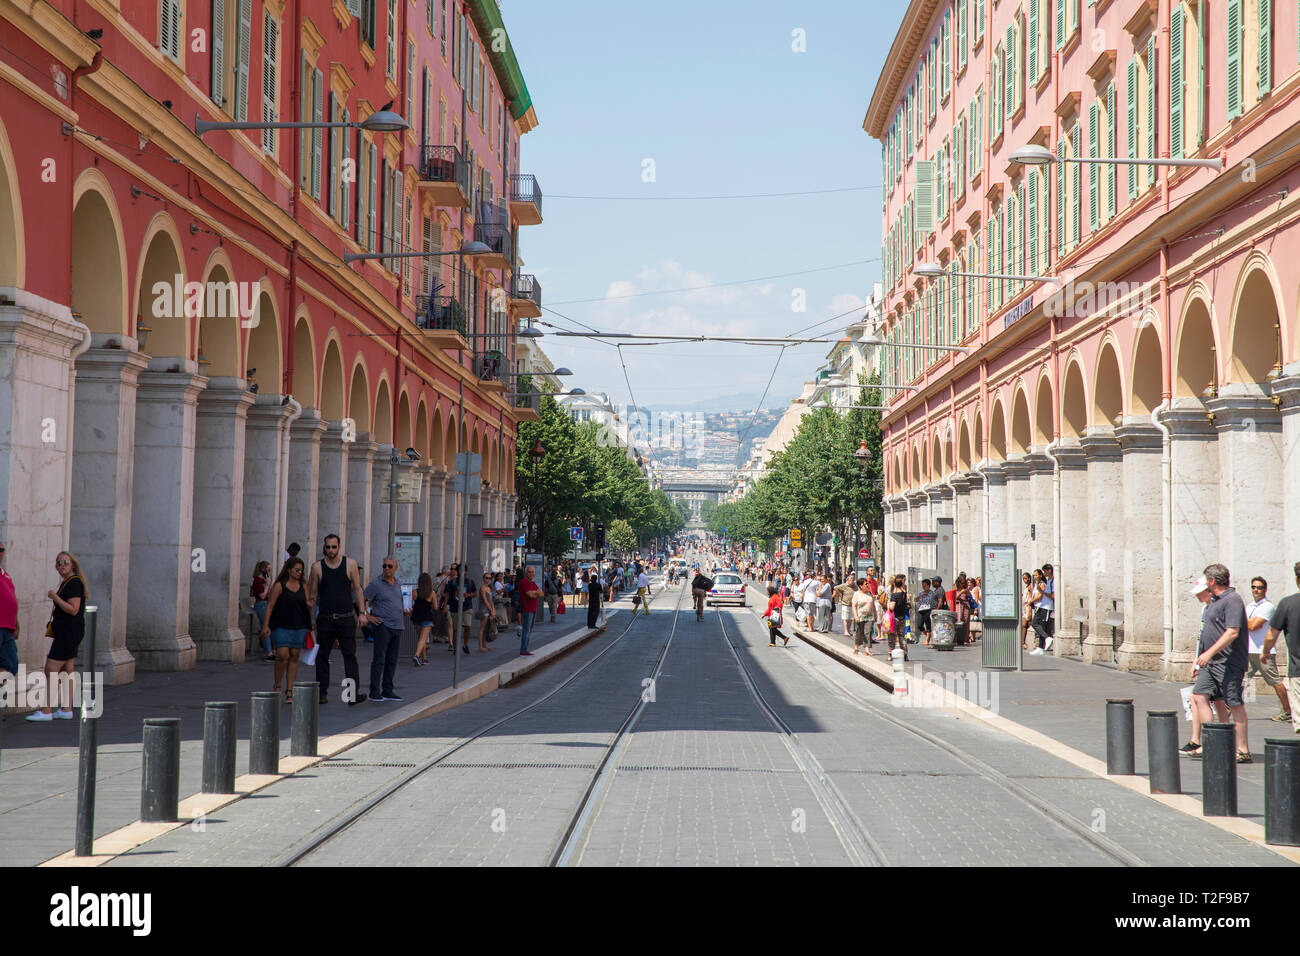 e83f00c3a43 Looking down Avenue Jean Médecin, a street located in the centre of Nice,  France